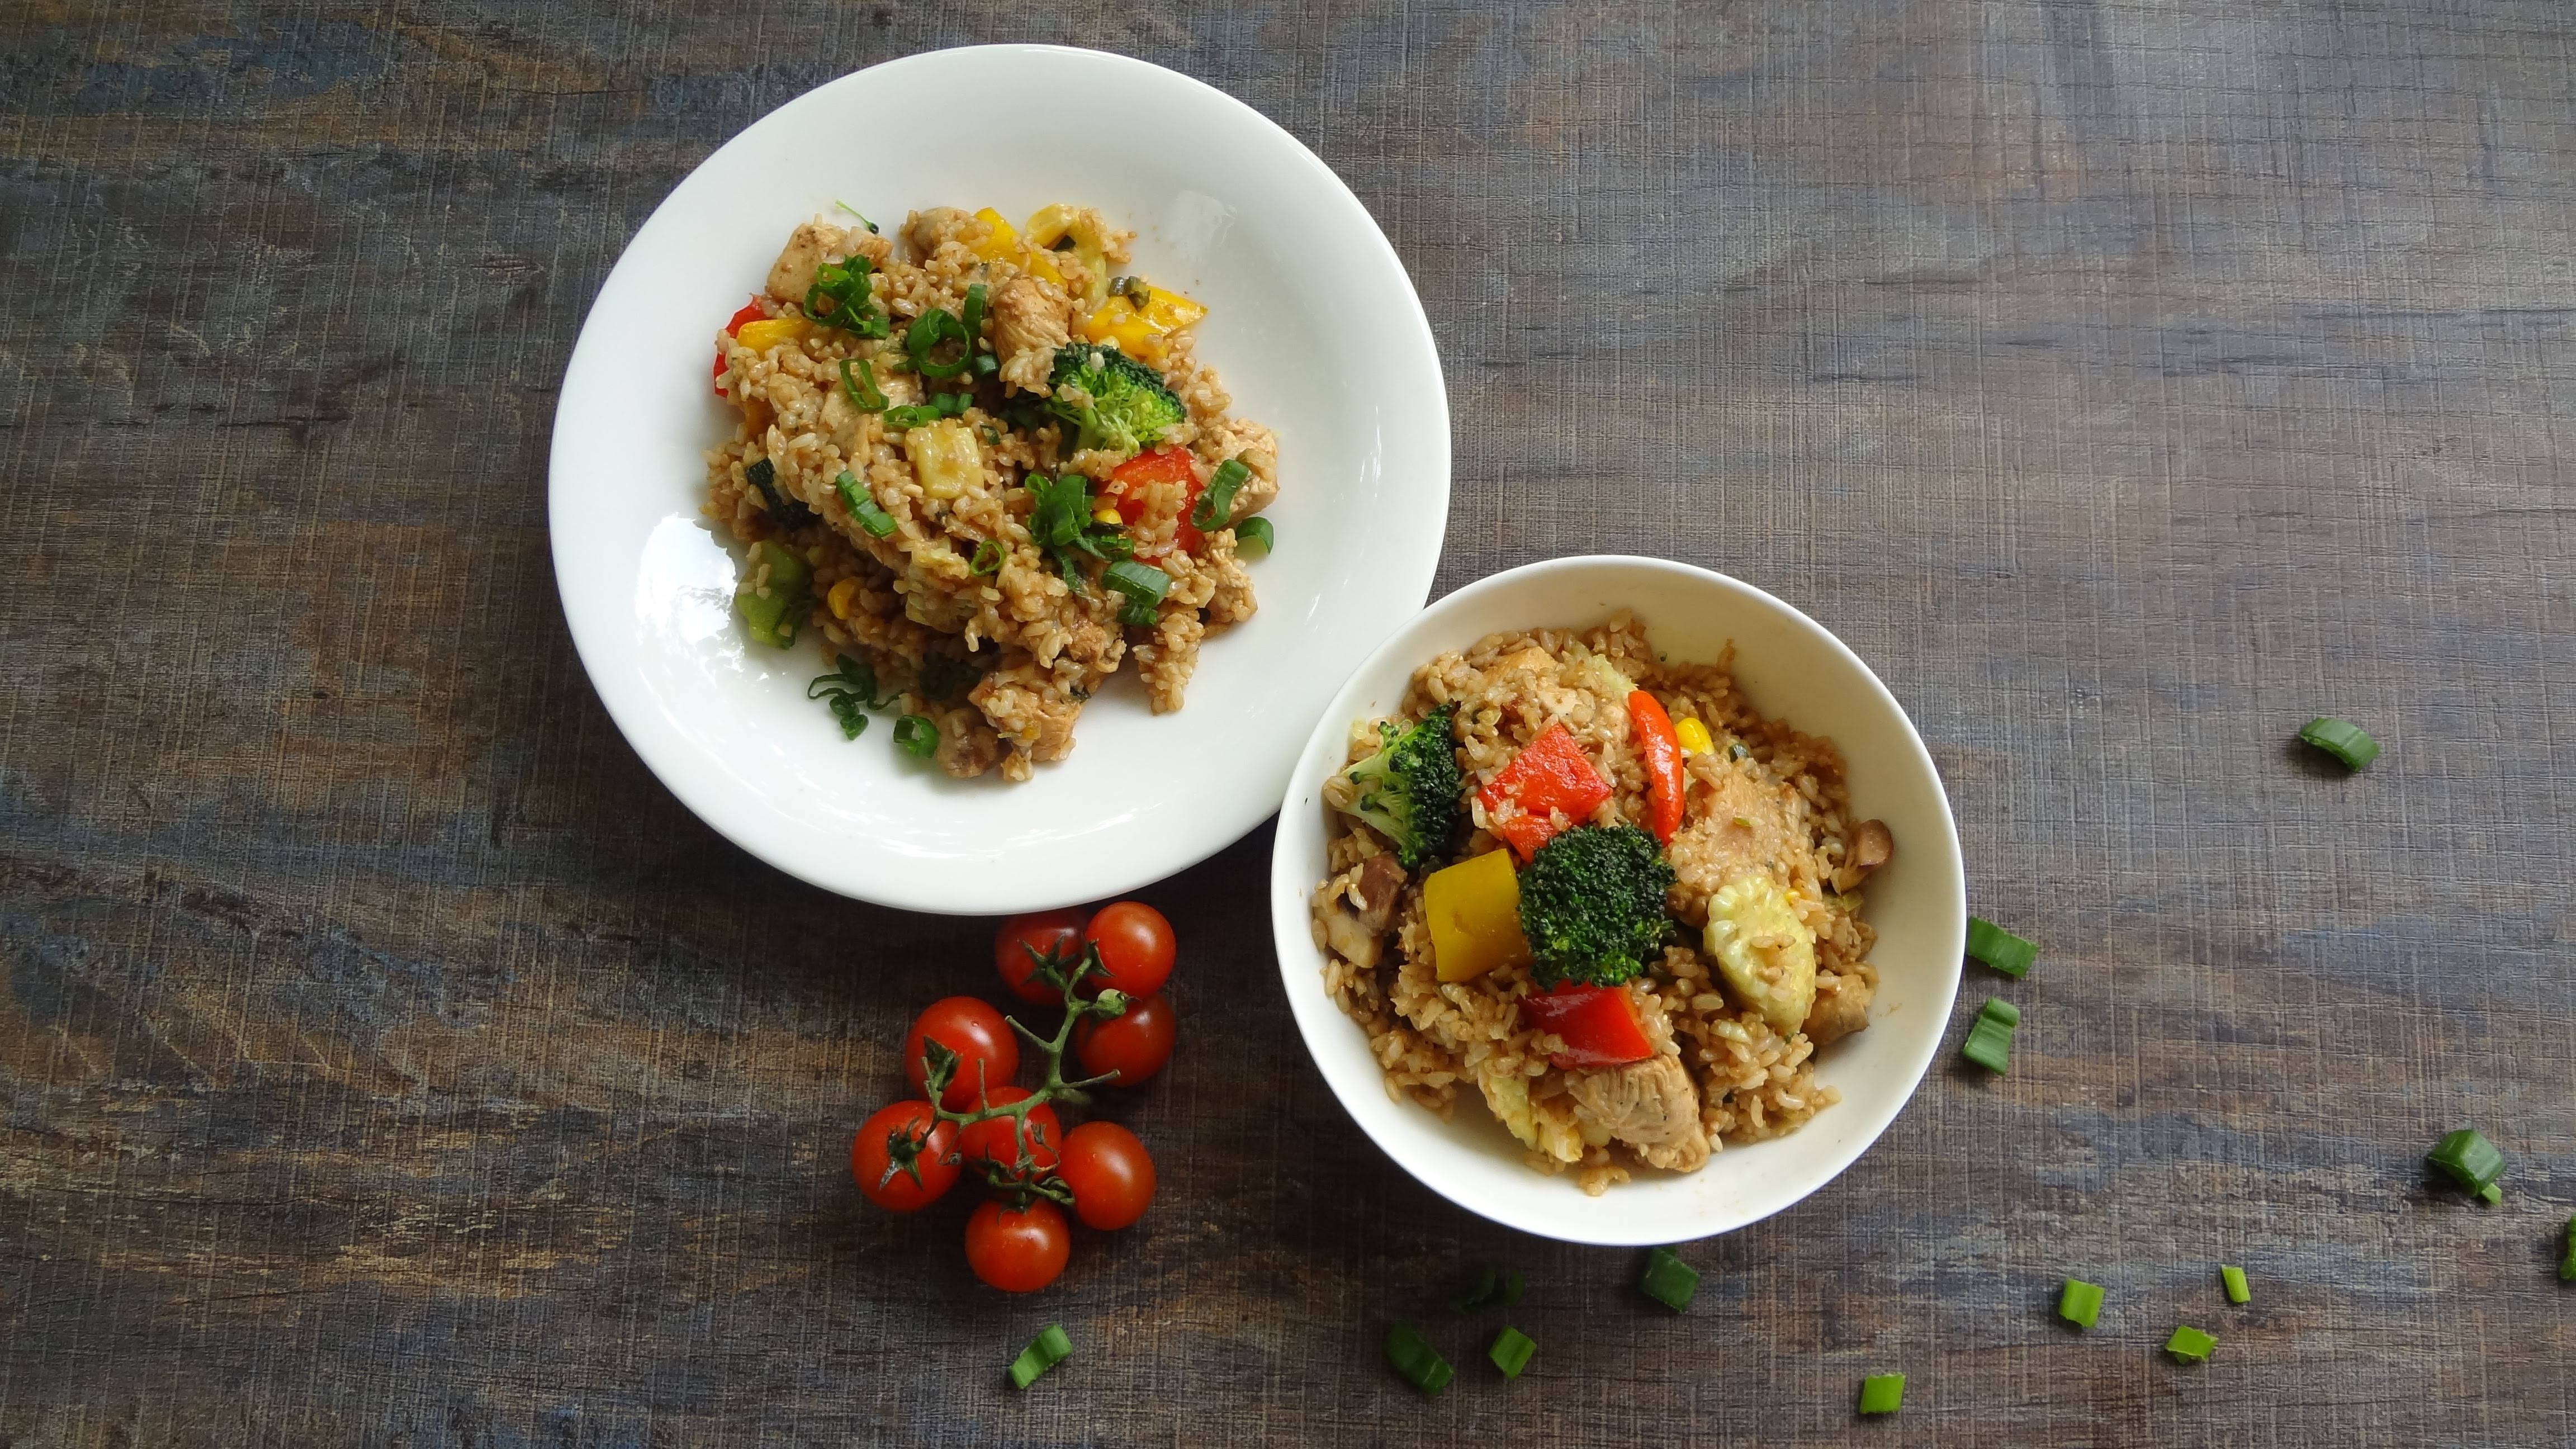 Chicken & Rice Meal Box